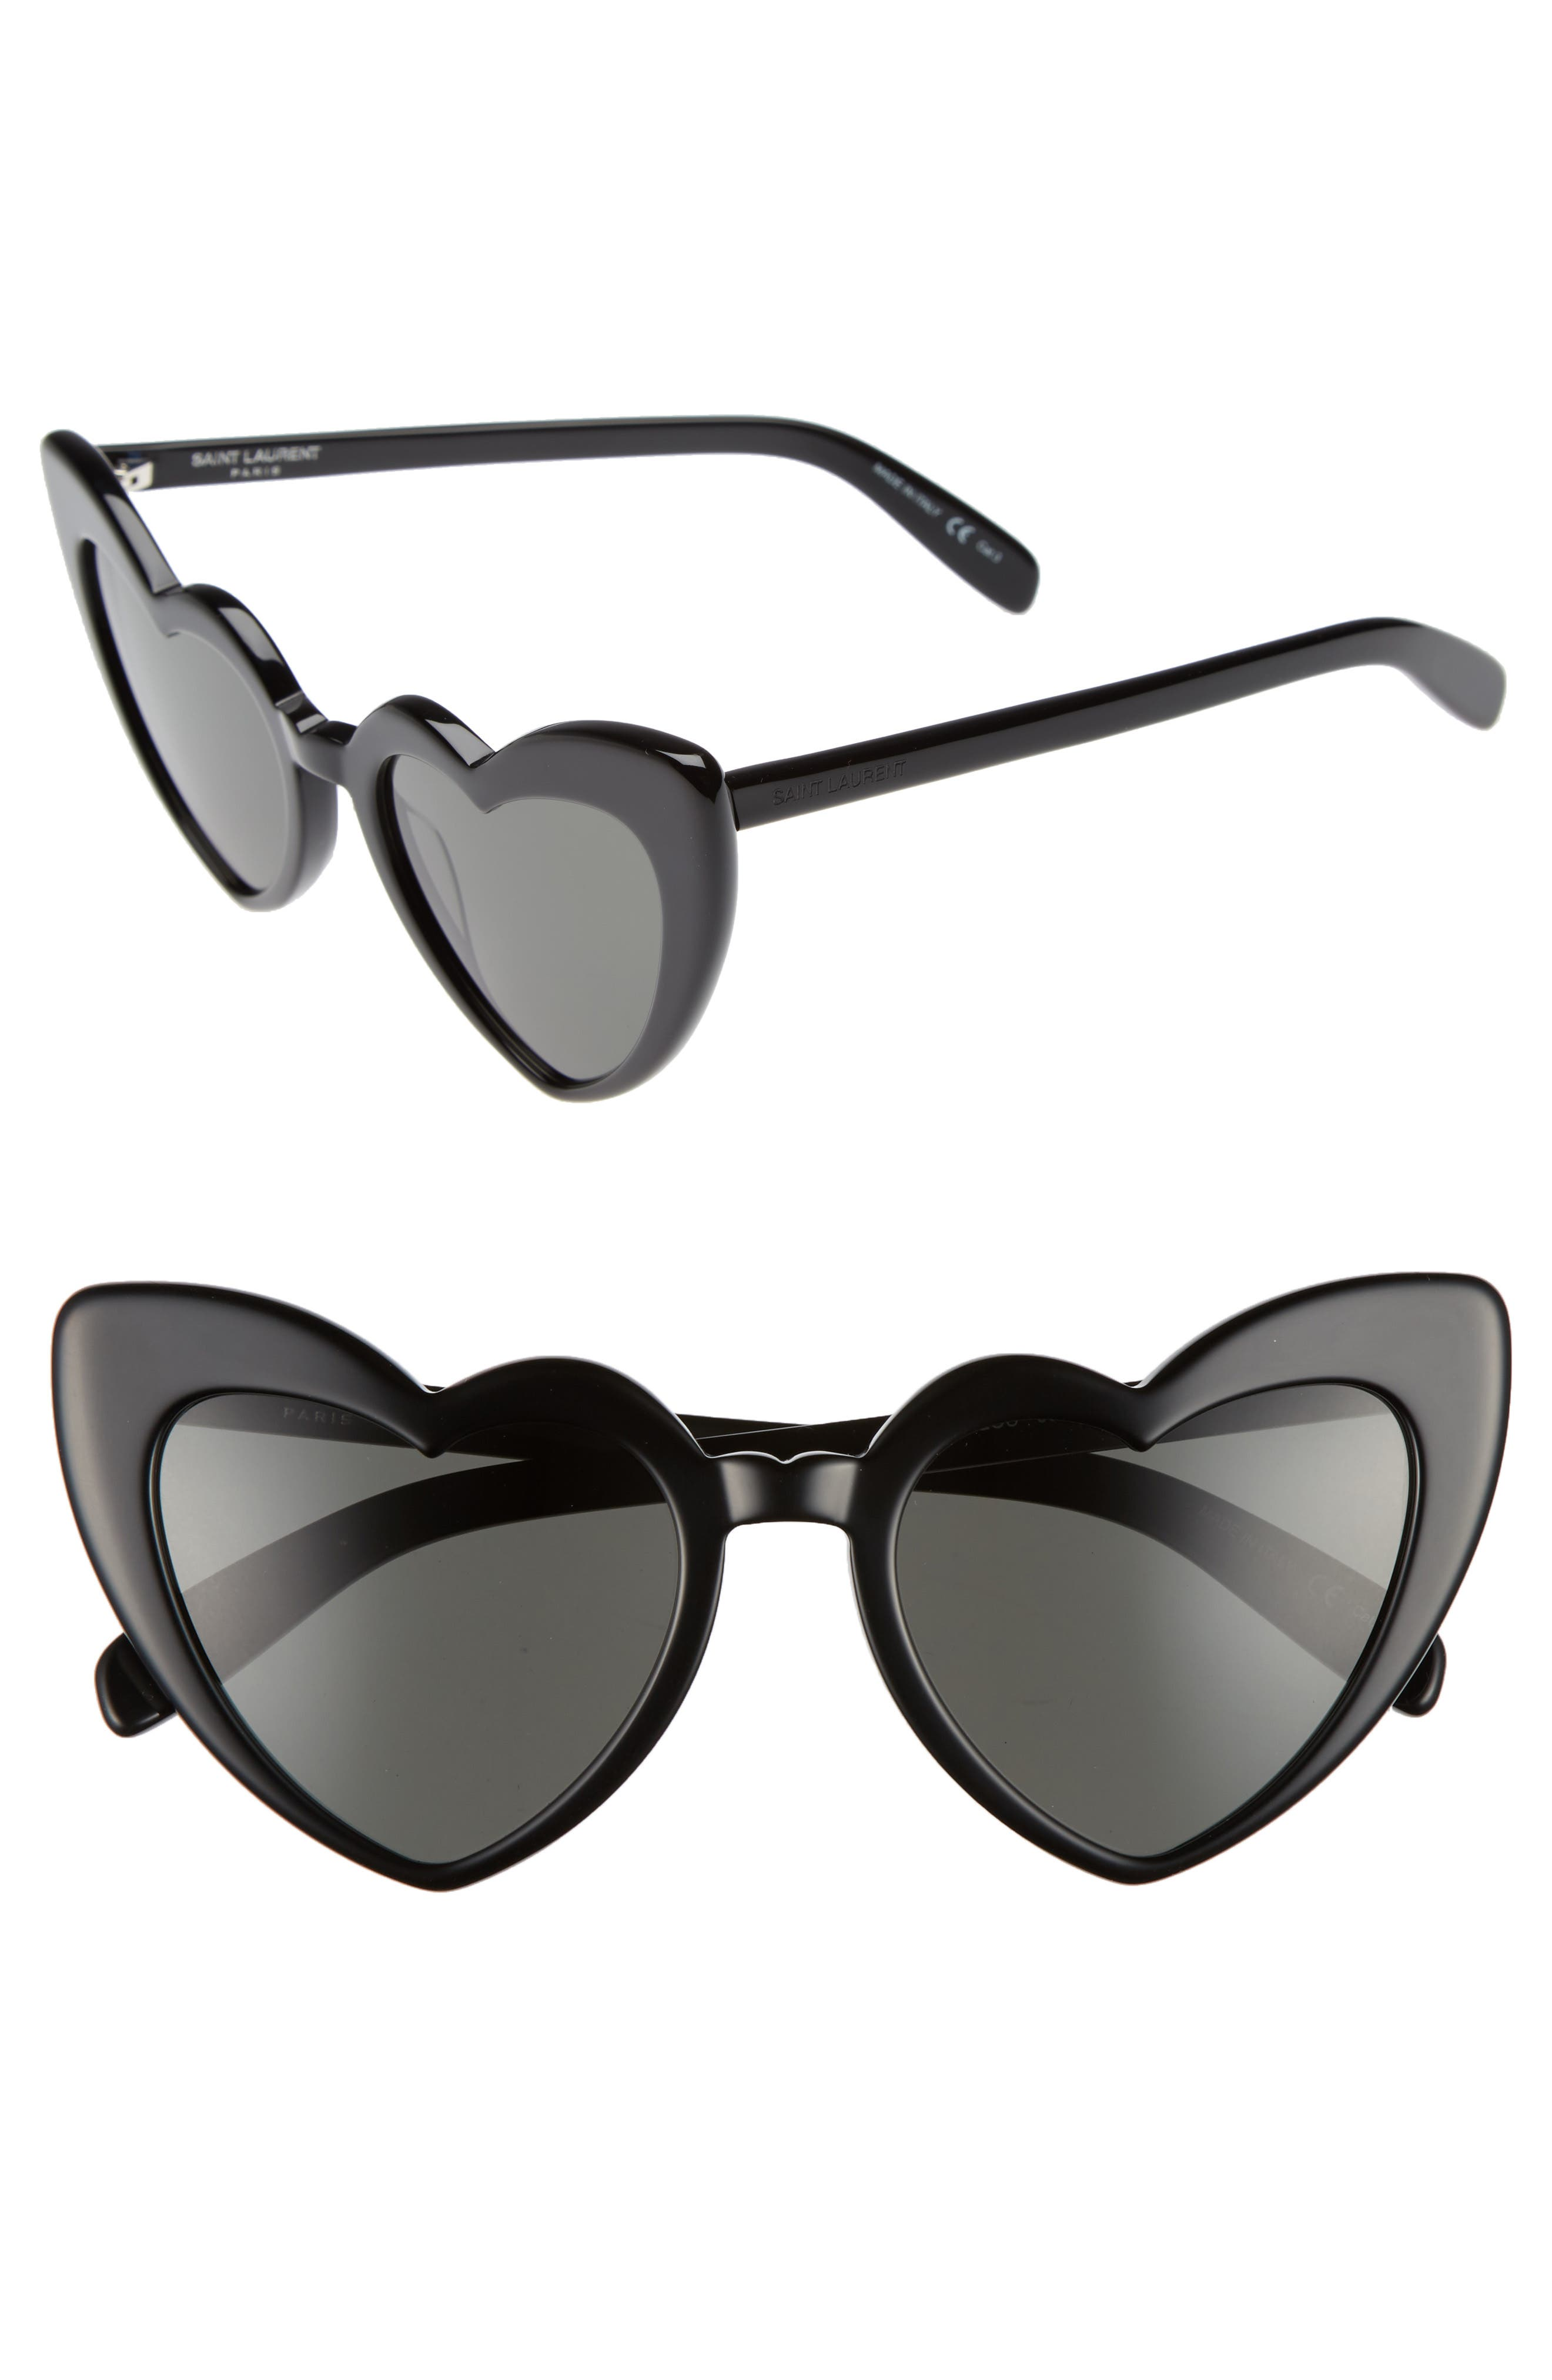 Loulou 54mm Heart Sunglasses,                         Main,                         color, Black/ Grey